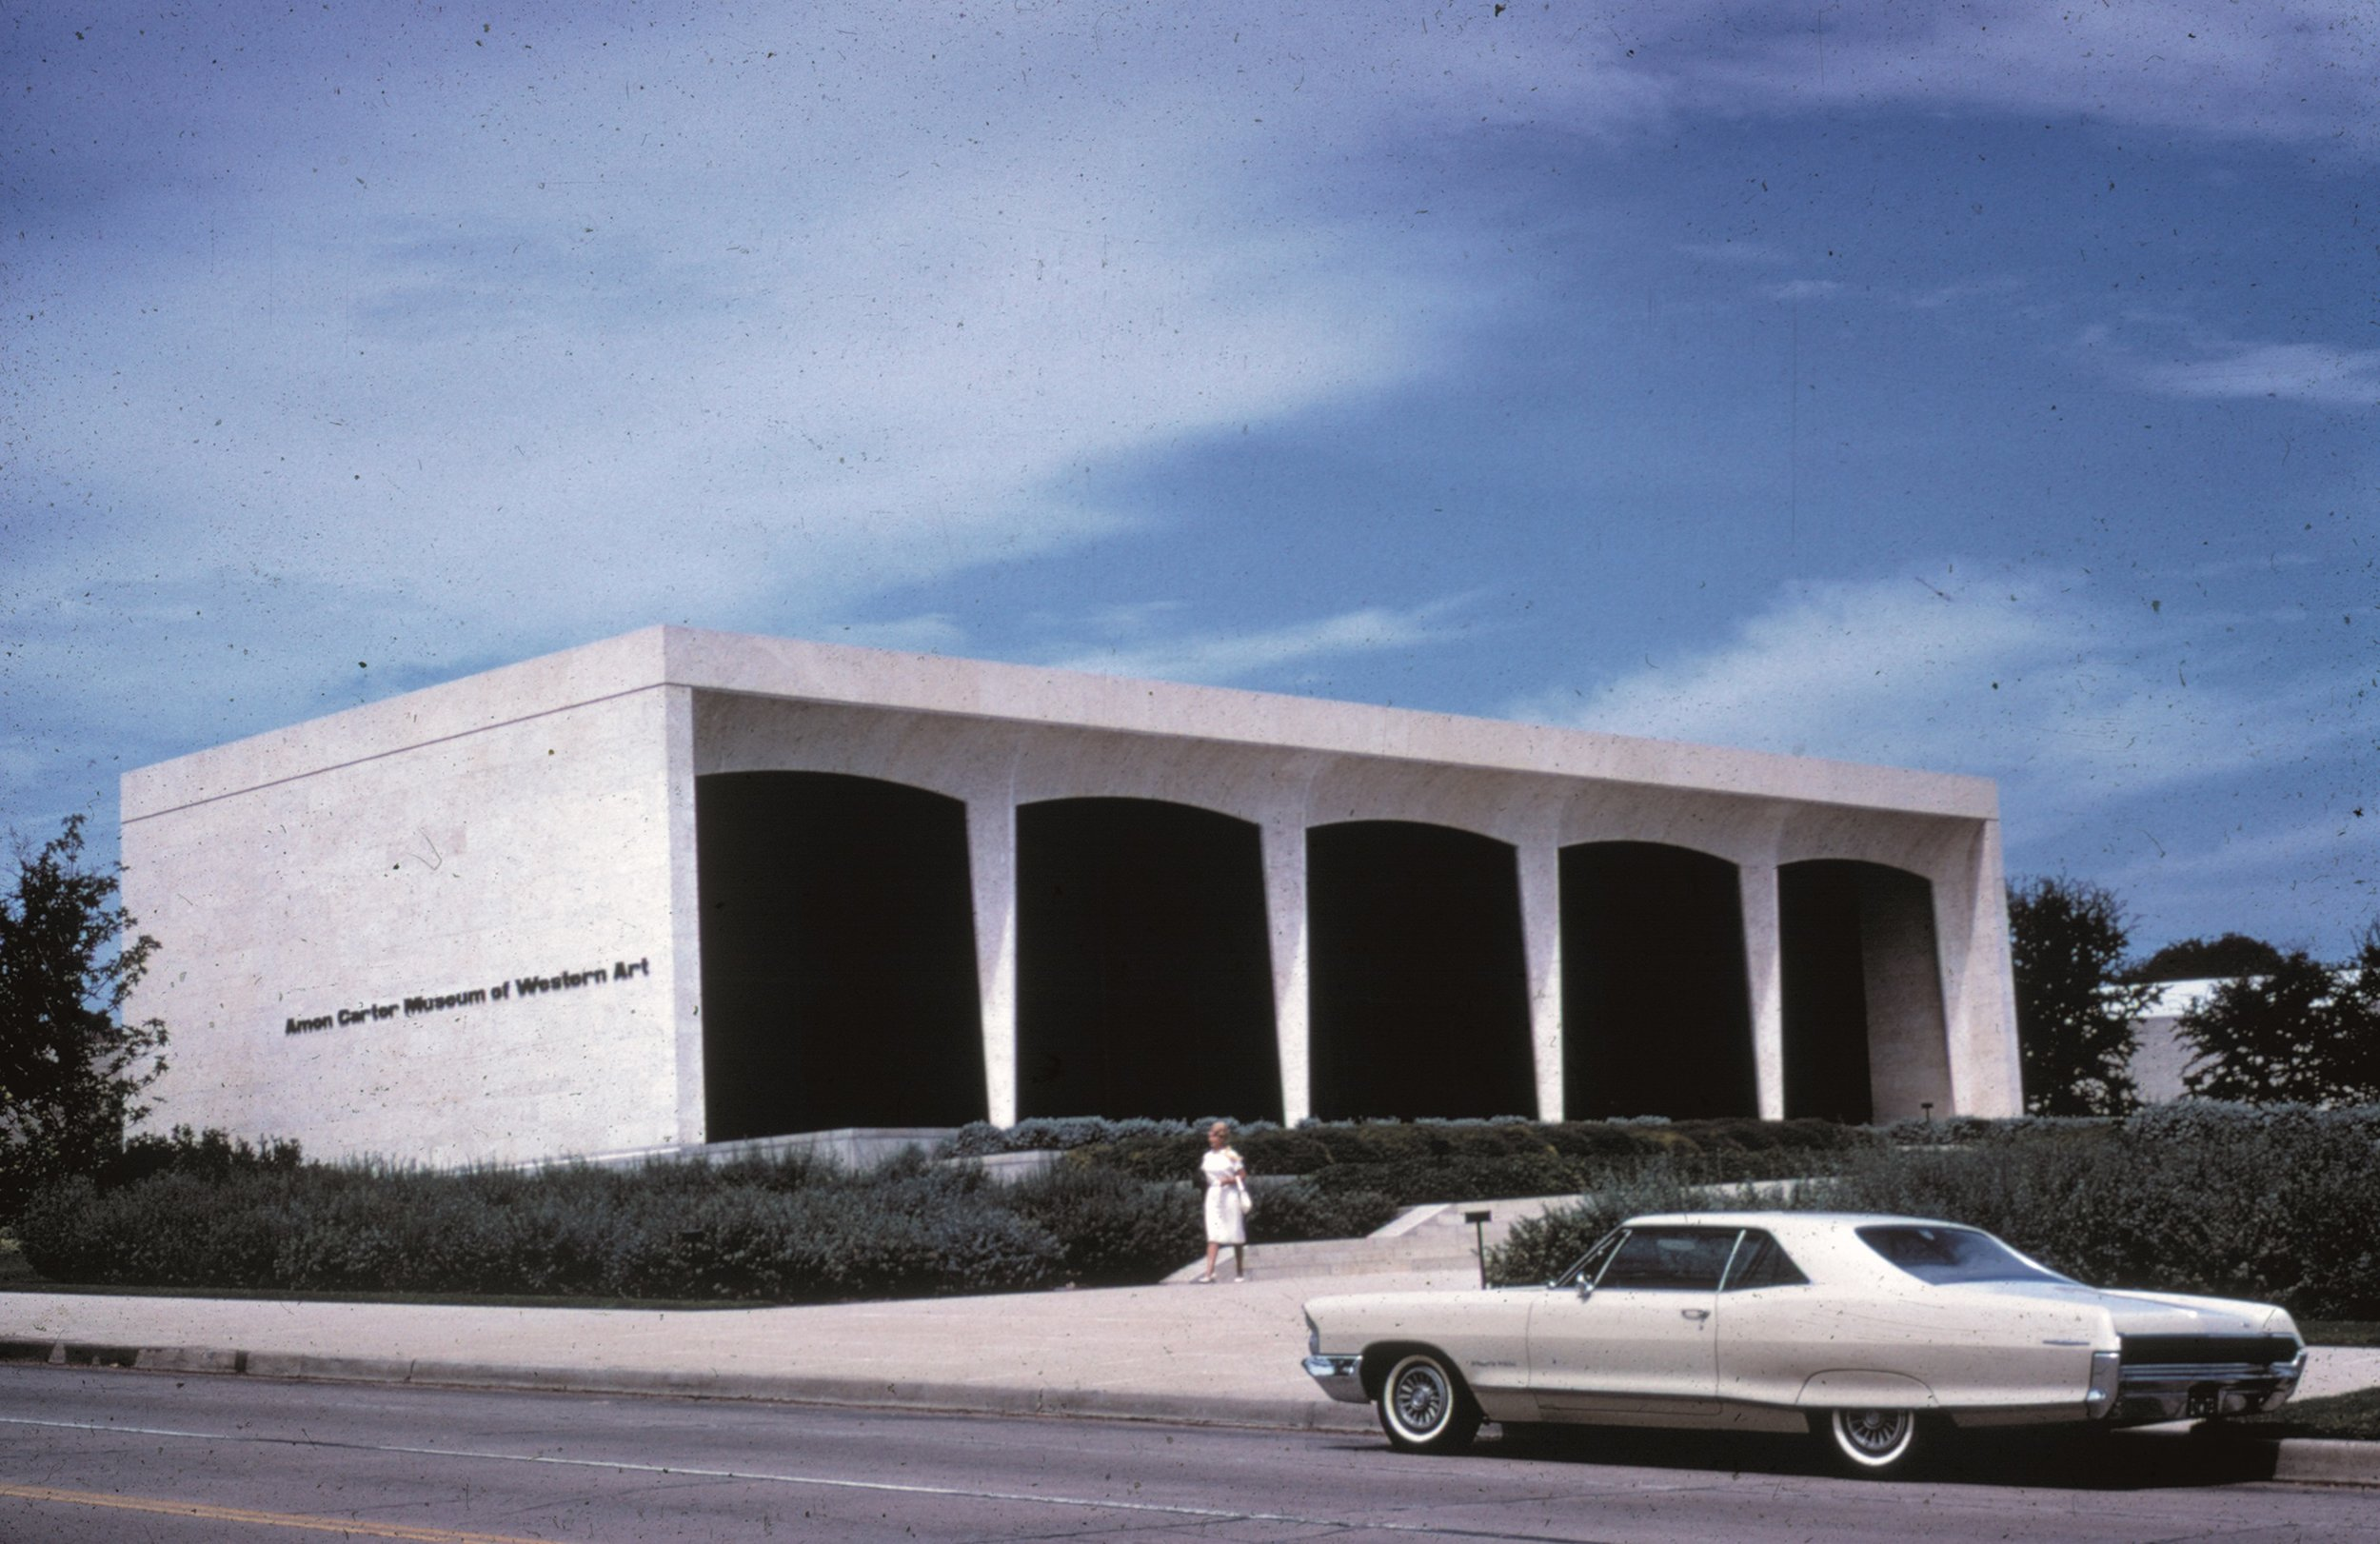 The Amon Carter Museum of American Art opened in 1961 in Fort Worth, not Dallas. (Photo courtesy of UTA Libraries Special Collection.)